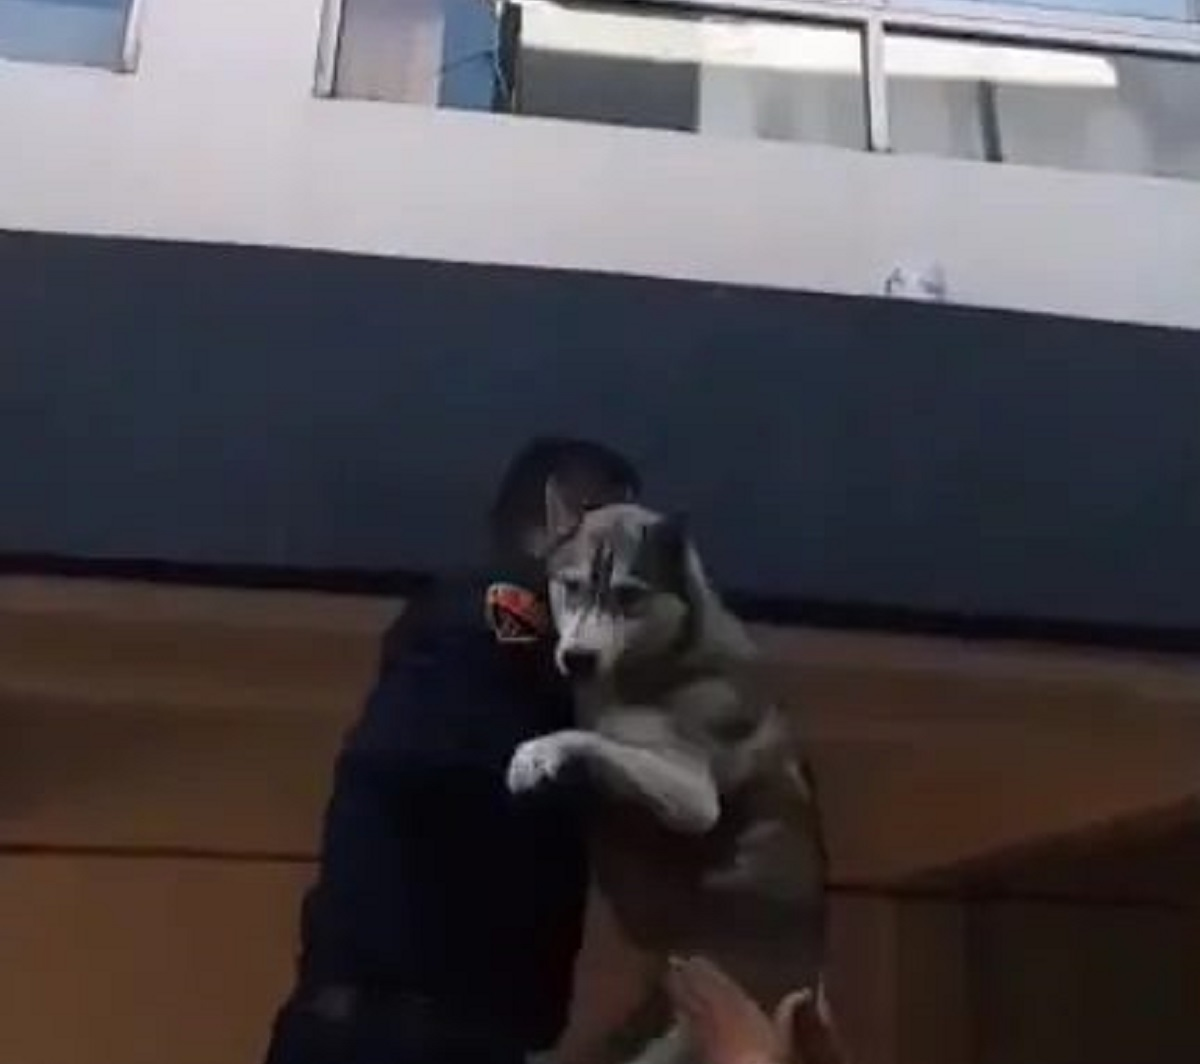 Cane Husky salvato dalla polizia durante un incendio (VIDEO)